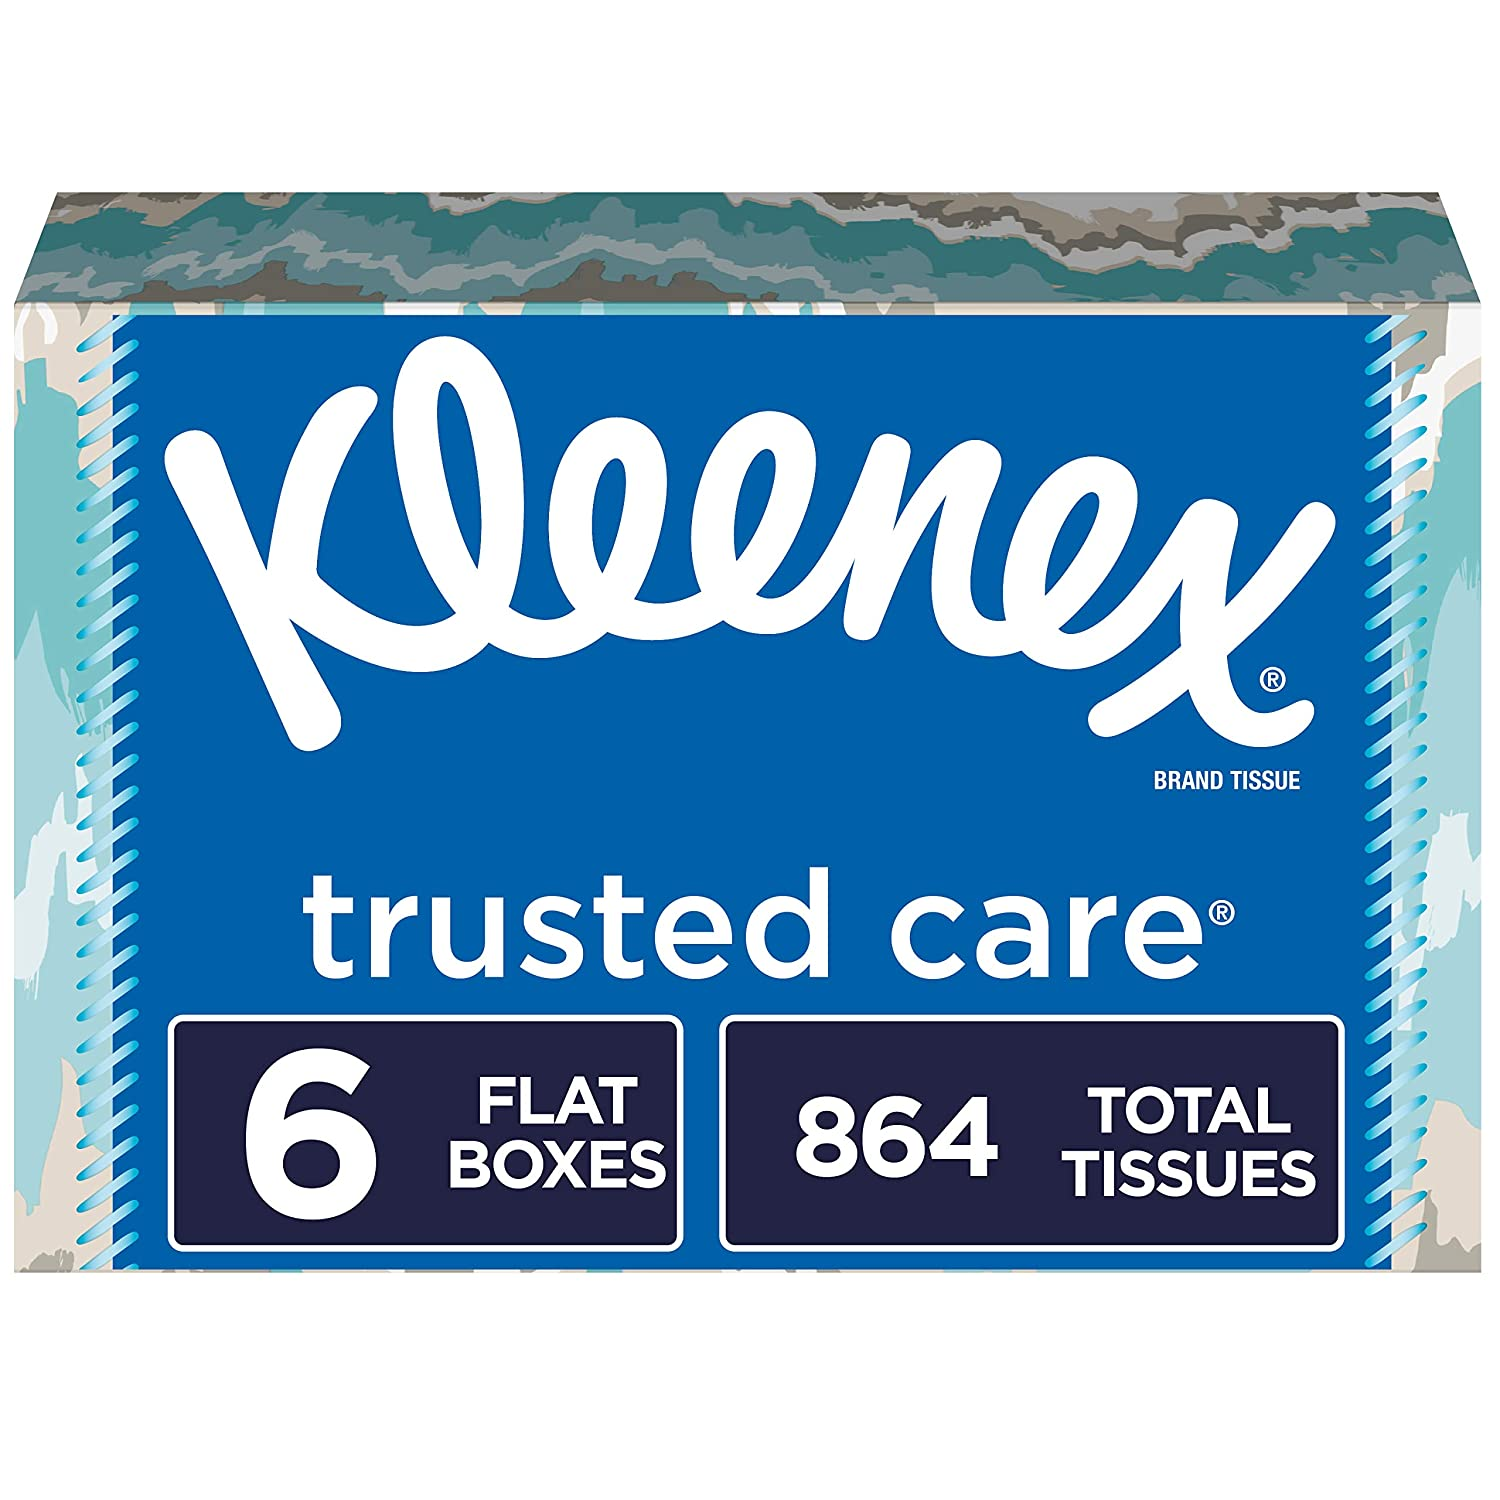 Kleenex Trusted Care Facial Tissues, 144 Tissues per Box,6 Flat Boxes